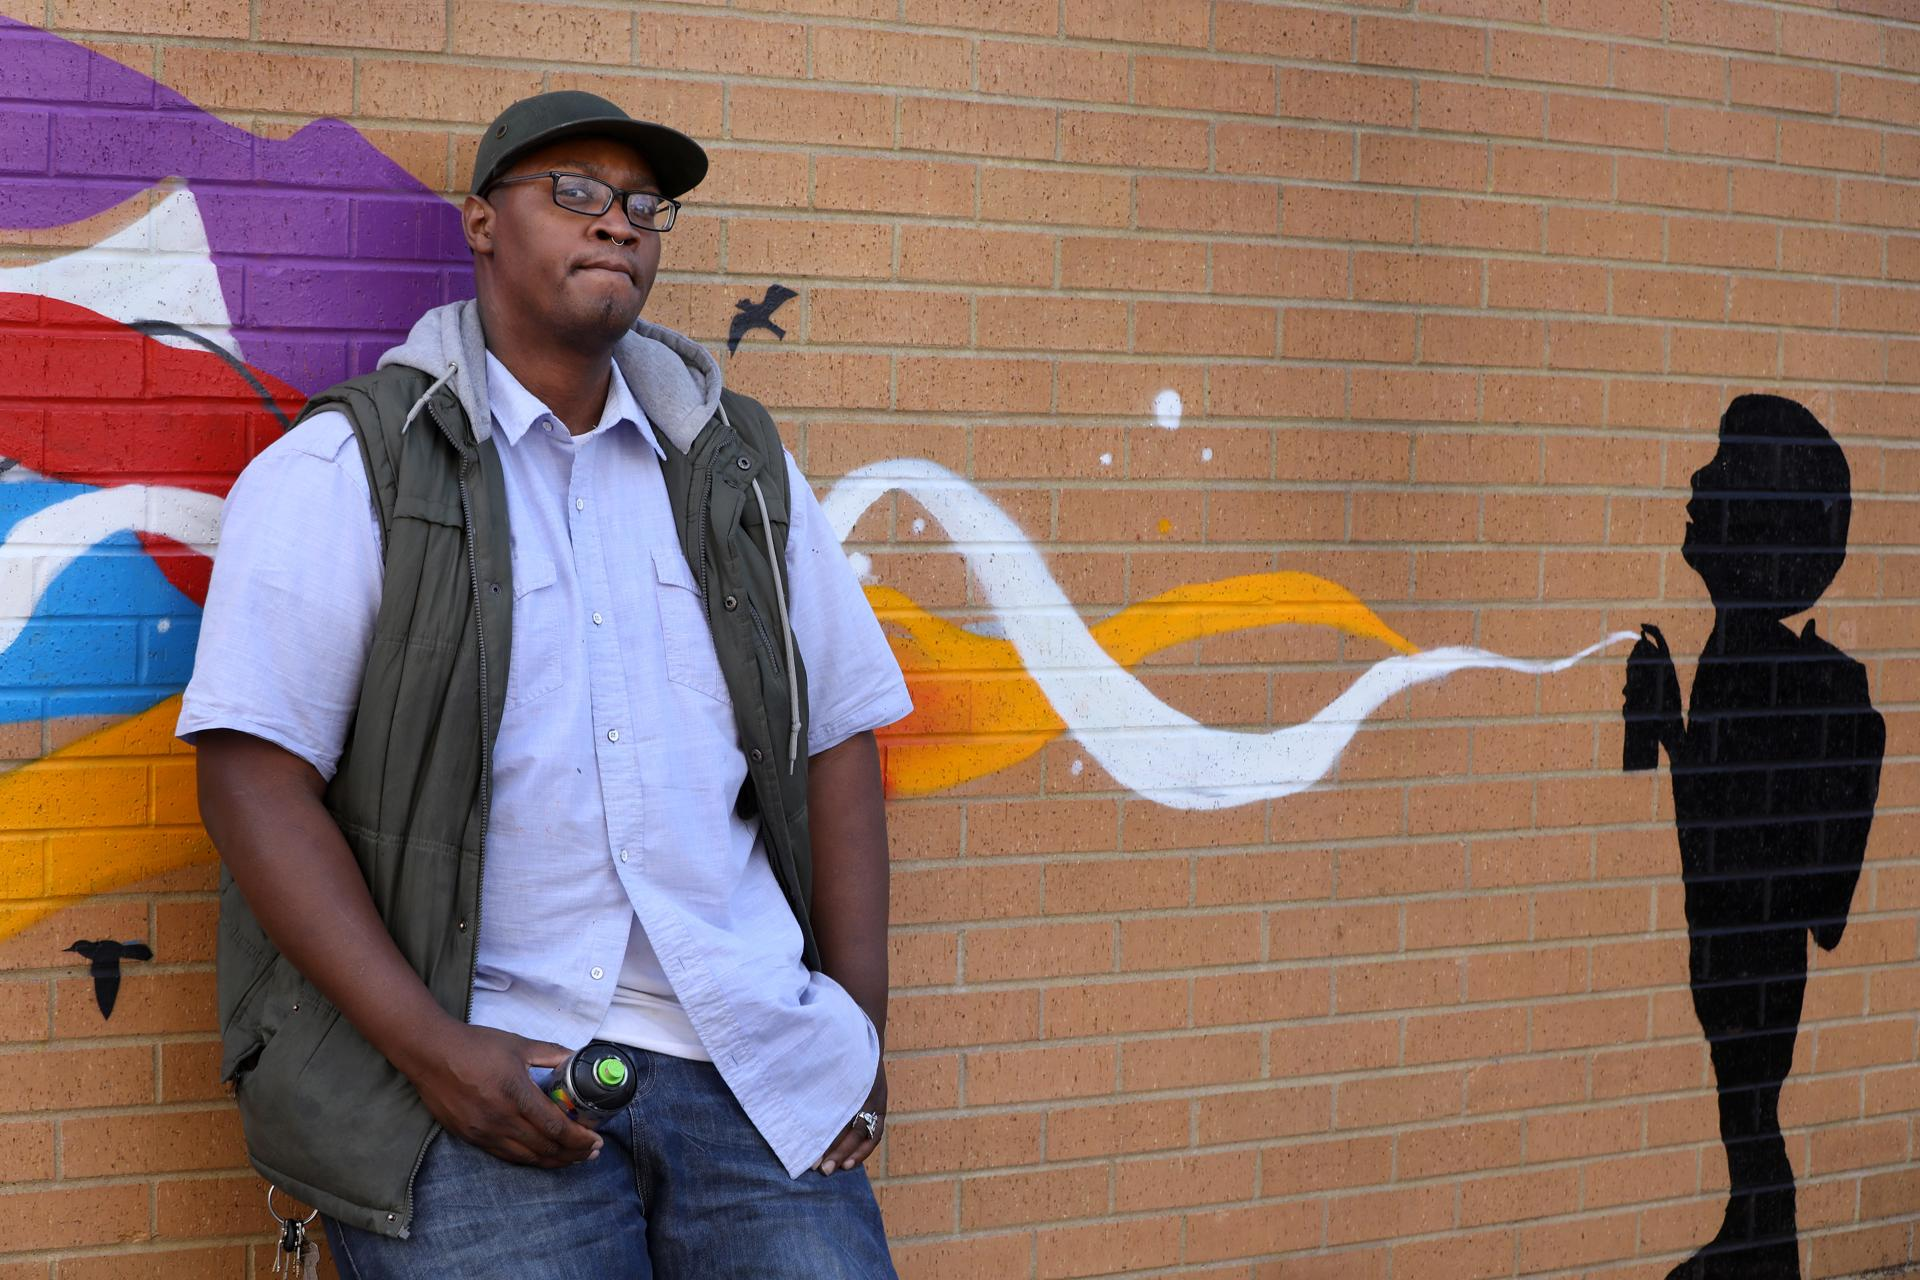 Boston's street art is hitting a growth spurt. Here's the man behind it.